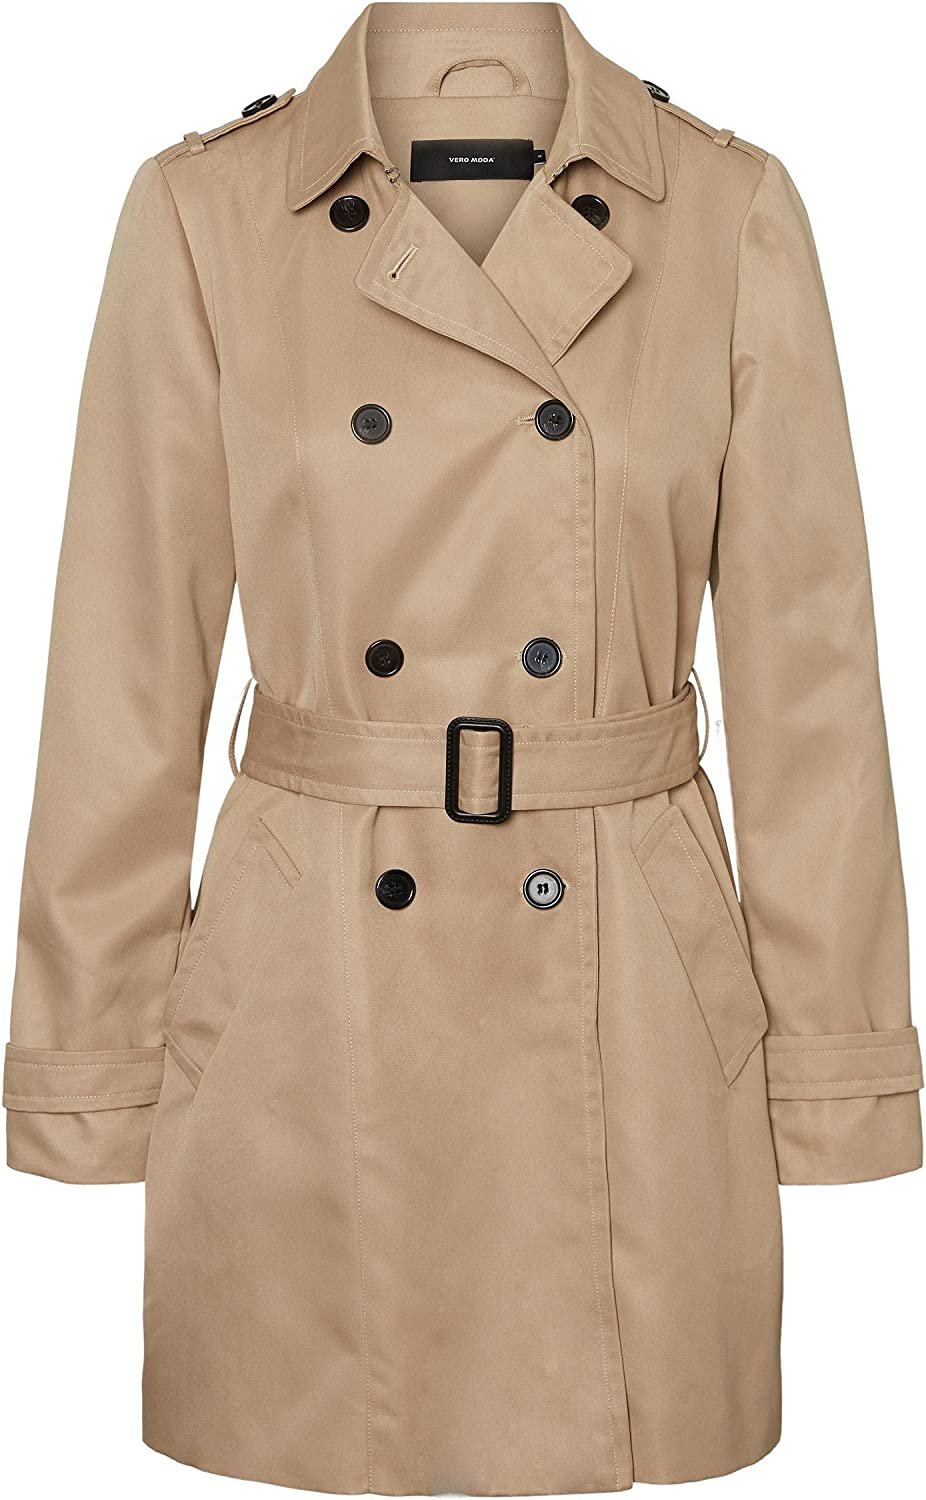 Shuuk Belted Trench Daily bargain sale Coat Miami Mall